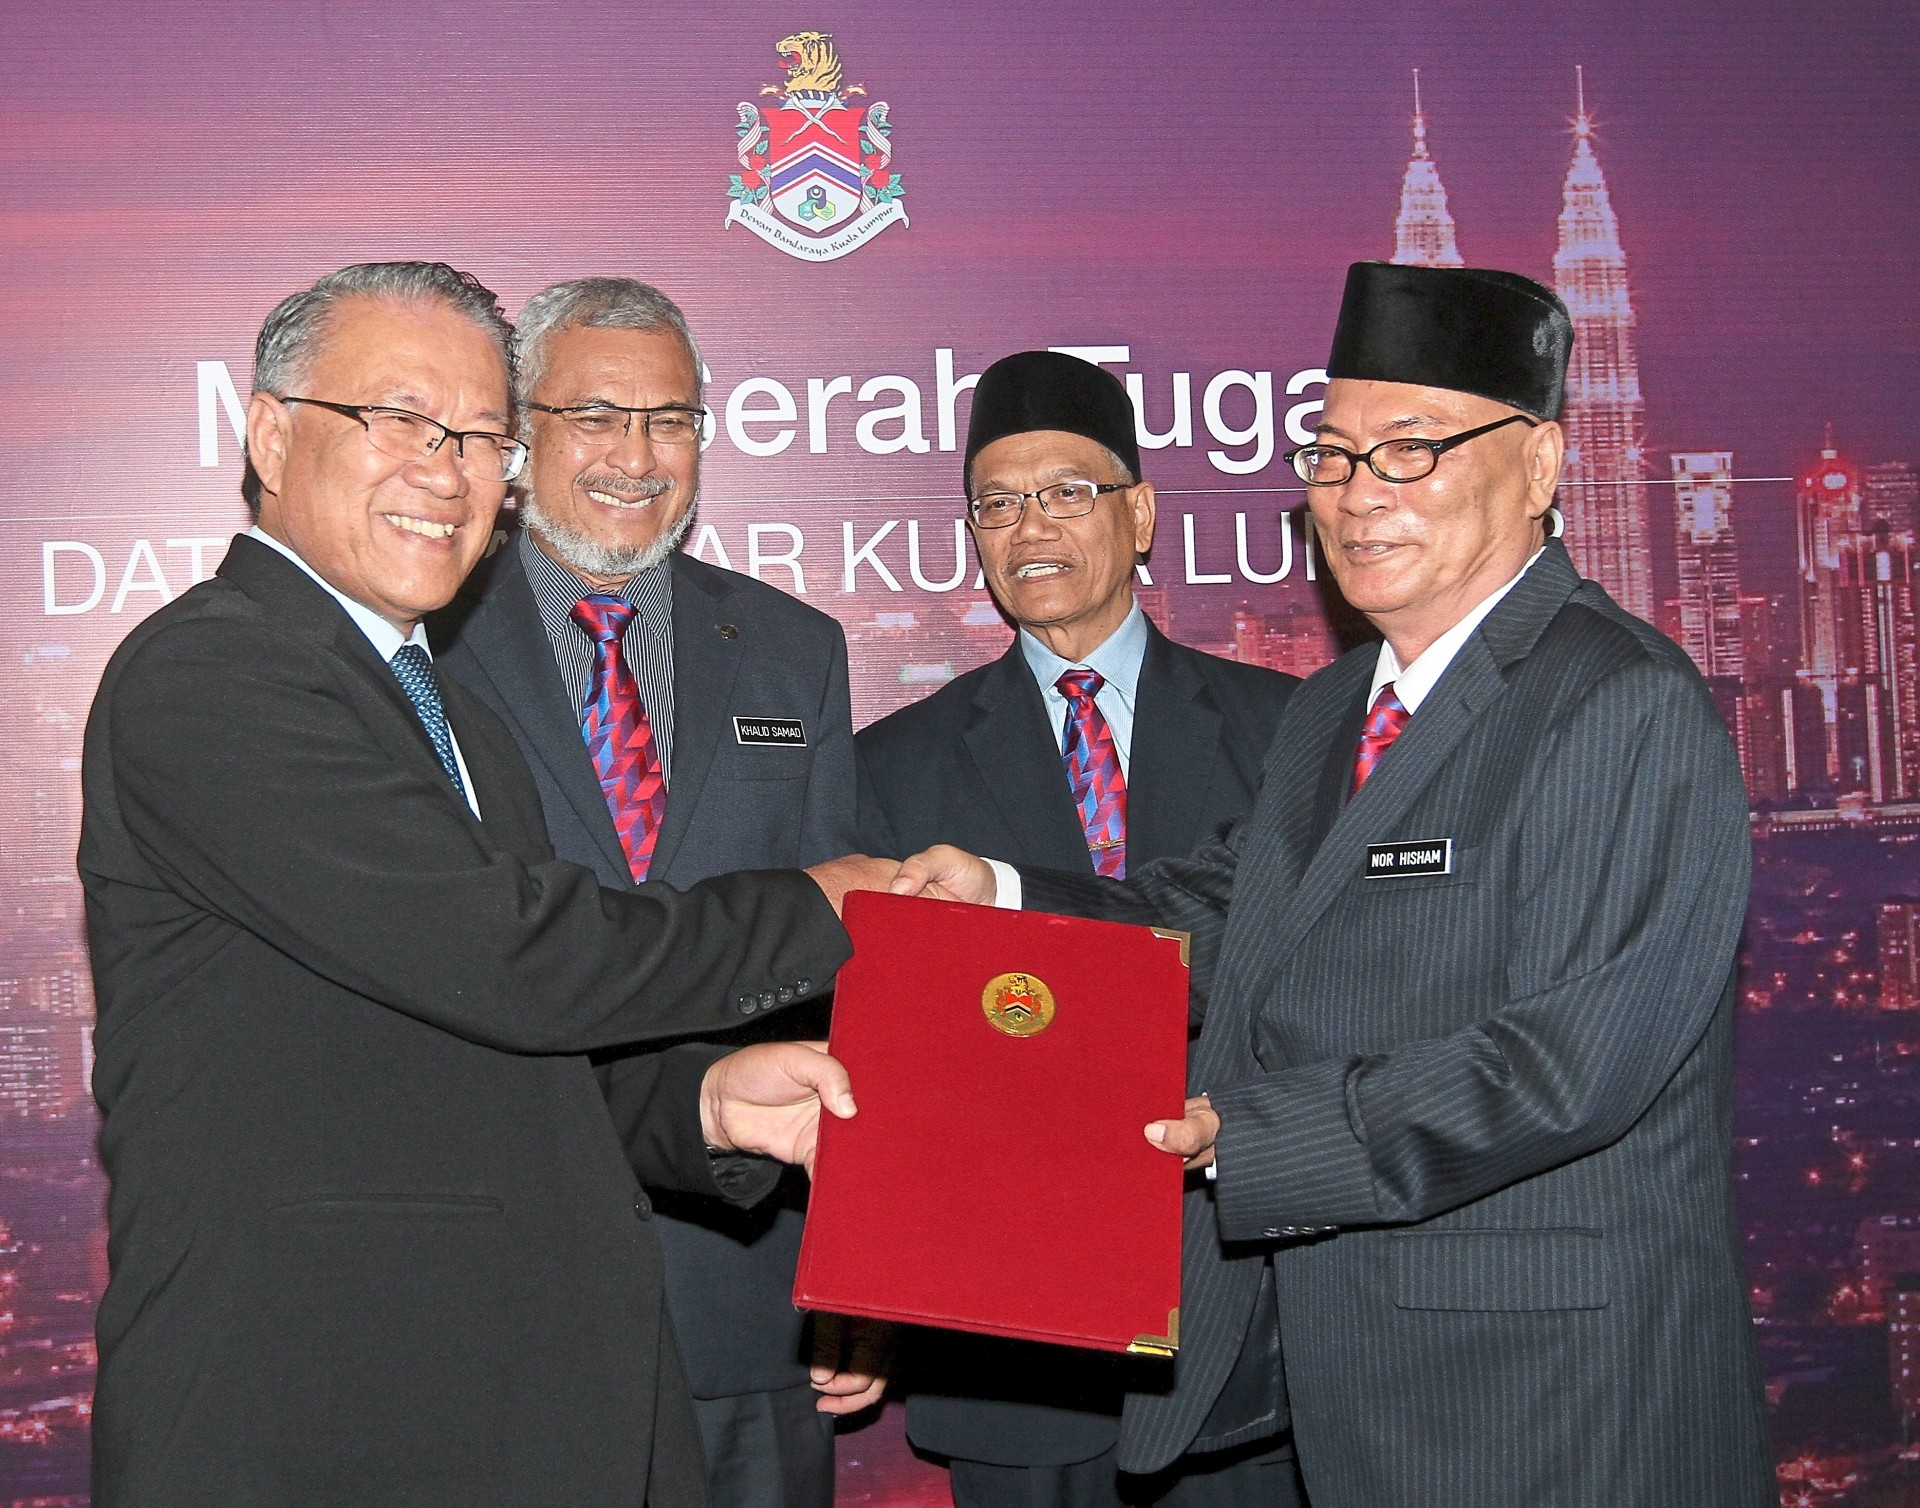 Outgoing Kuala Lumpur mayor Mohd Amin (left) handing over his duties to Nor Hisham last year. Looking on are Khalid (second from left) and Deputy FT Minister Datuk Dr Shahruddin Md Salleh. —filepic